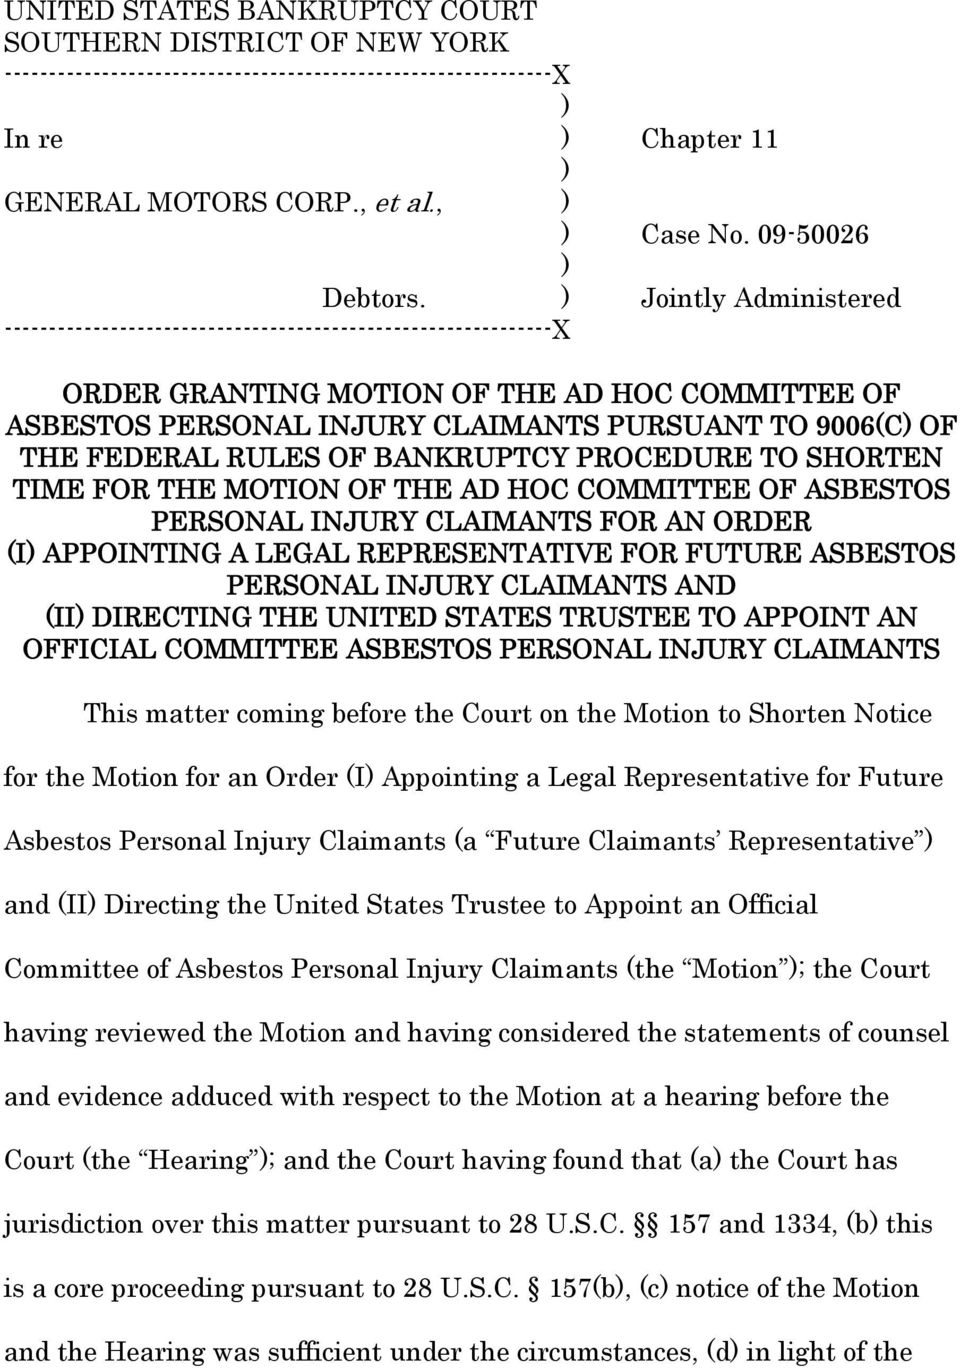 FEDERAL RULES OF BANKRUPTCY PROCEDURE TO SHORTEN TIME FOR THE MOTION OF THE AD HOC COMMITTEE OF ASBESTOS PERSONAL INJURY CLAIMANTS FOR AN ORDER (I APPOINTING A LEGAL REPRESENTATIVE FOR FUTURE